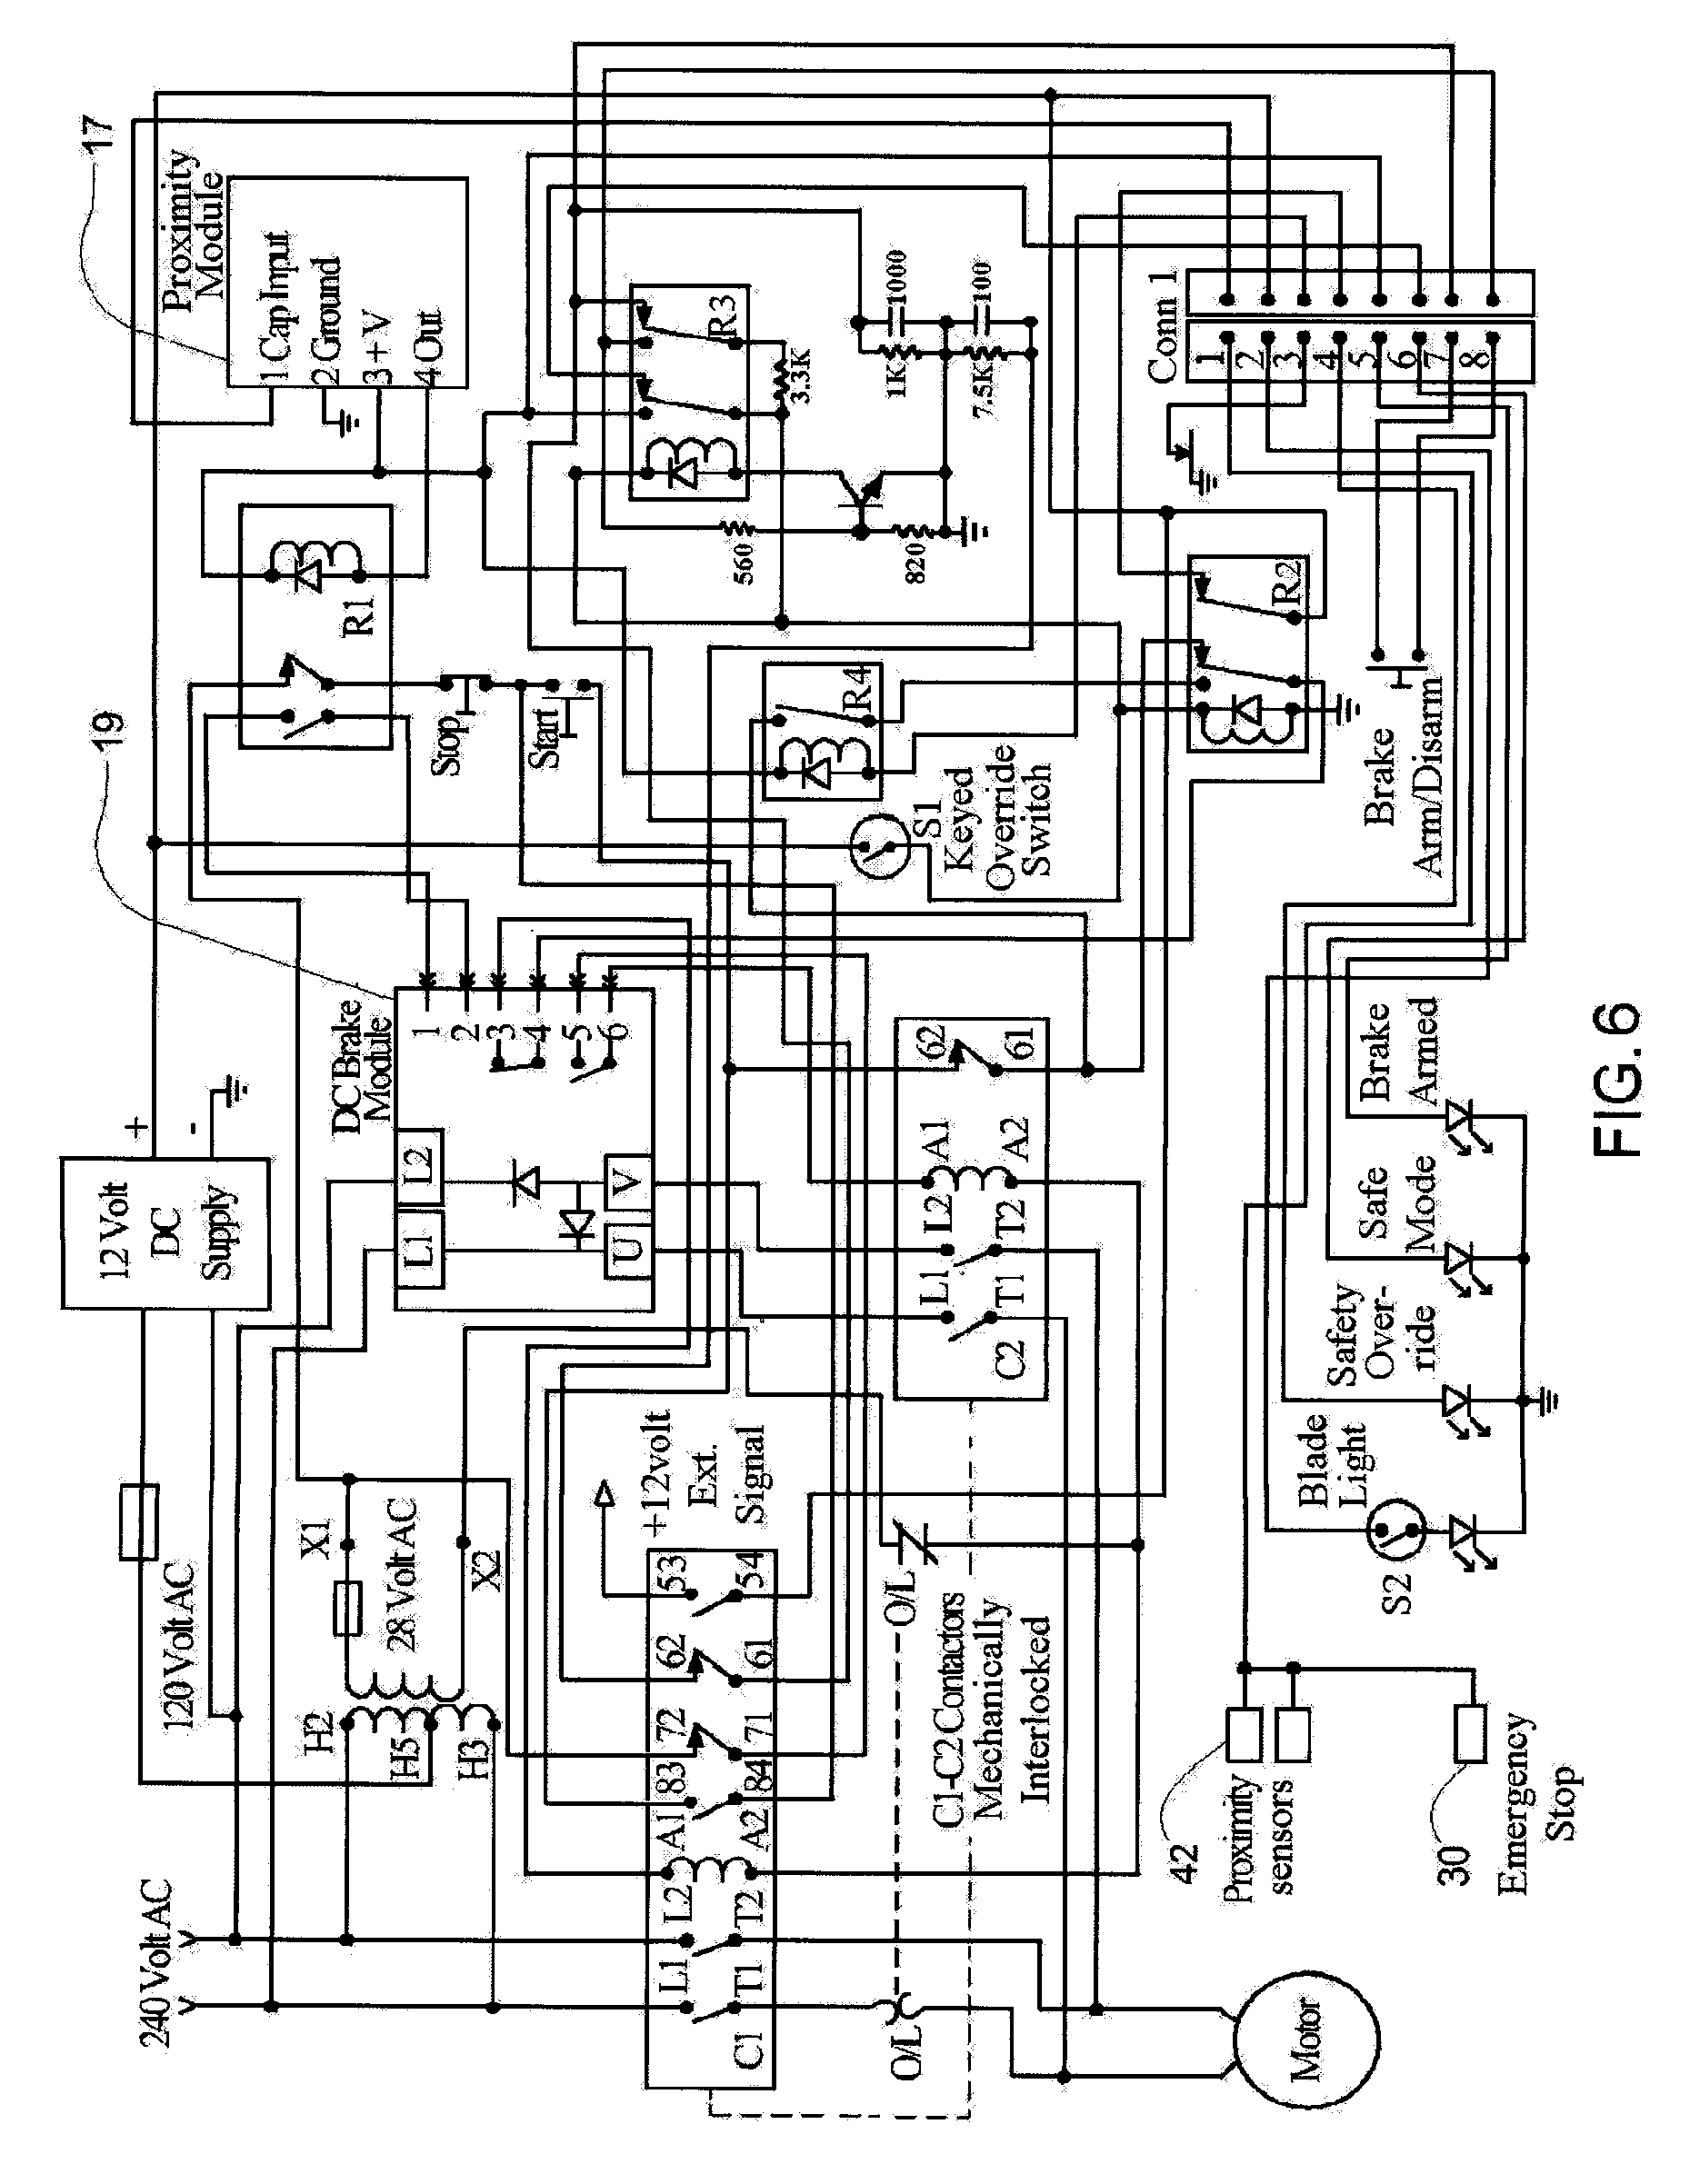 3 phase sub panel wiring diagram with Delta Unisaw Wiring Diagram on 3 Phase Ct Meter Wiring Diagrams additionally Help Sub Panels 208479 Print as well Nec Sub Panel Location additionally Wiring Diagram Breaker Panel as well Small Engine Ignition Switch Wiring Diagram.